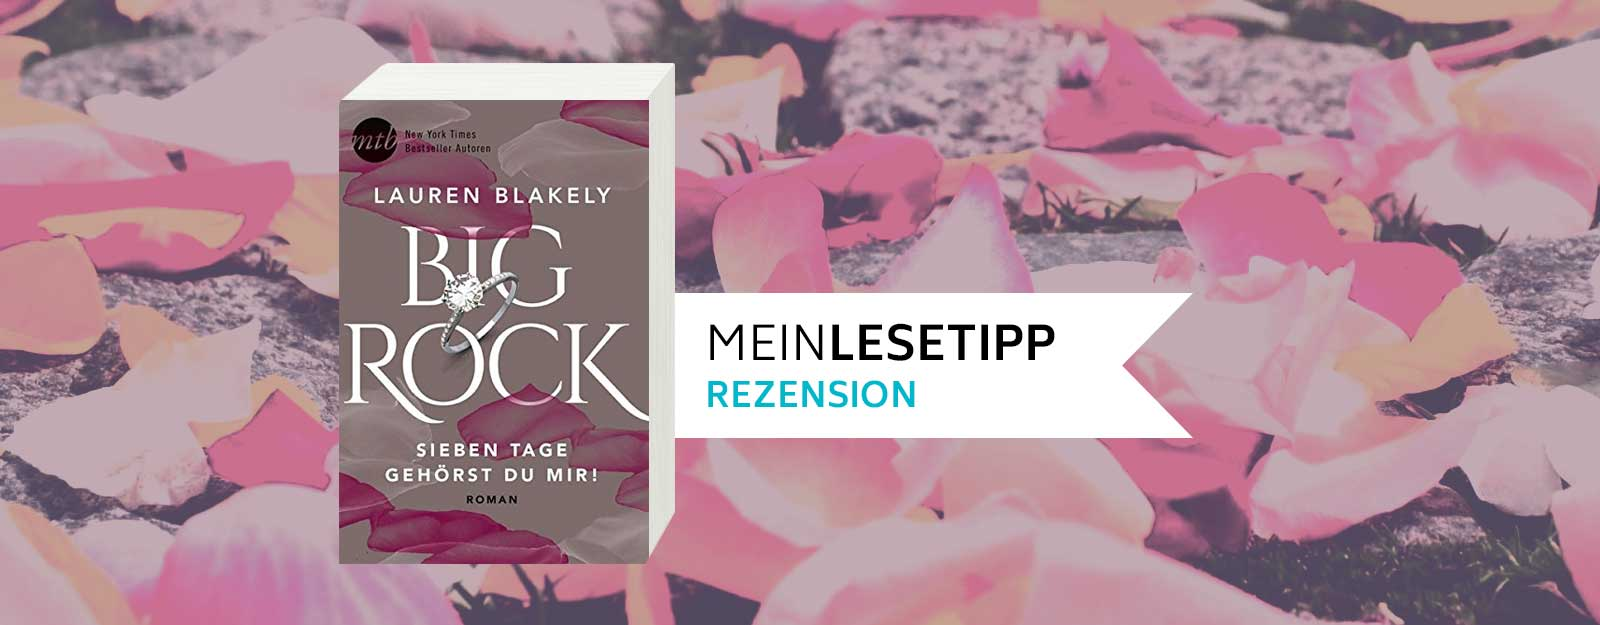 Buchrezension: Big Rock von Lauren Blakely